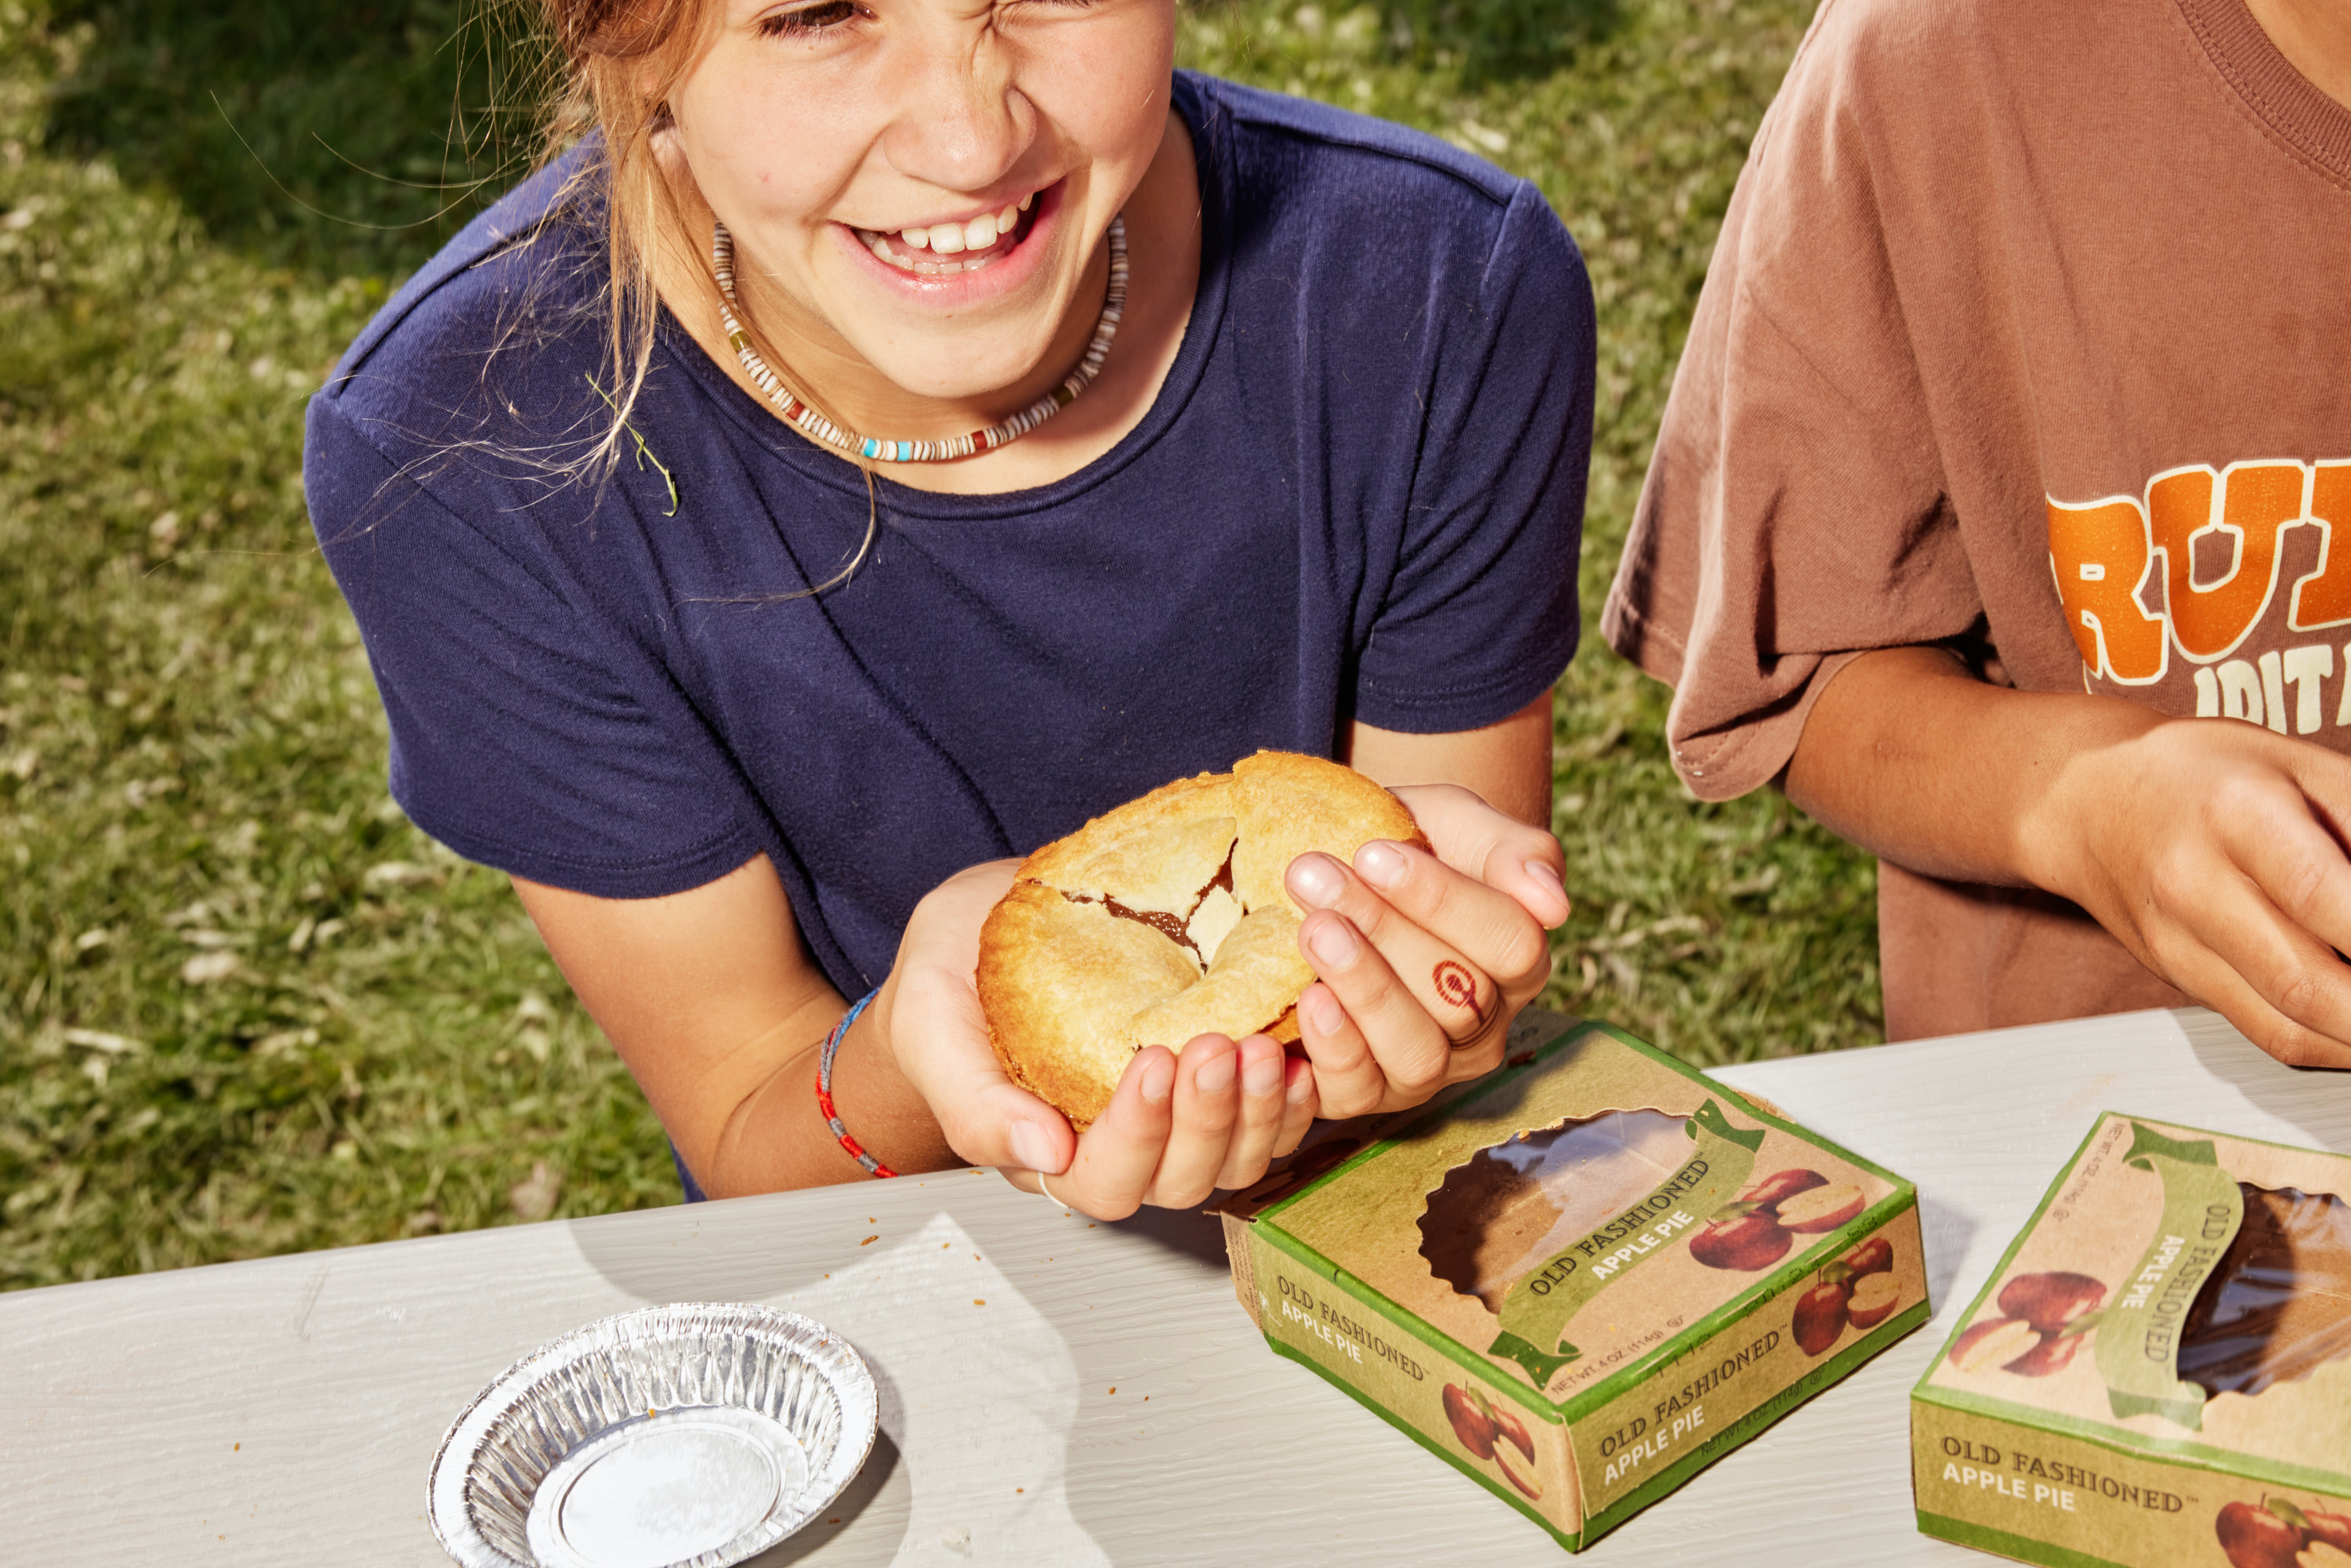 A young girl laughs while holding a small pie in her hands